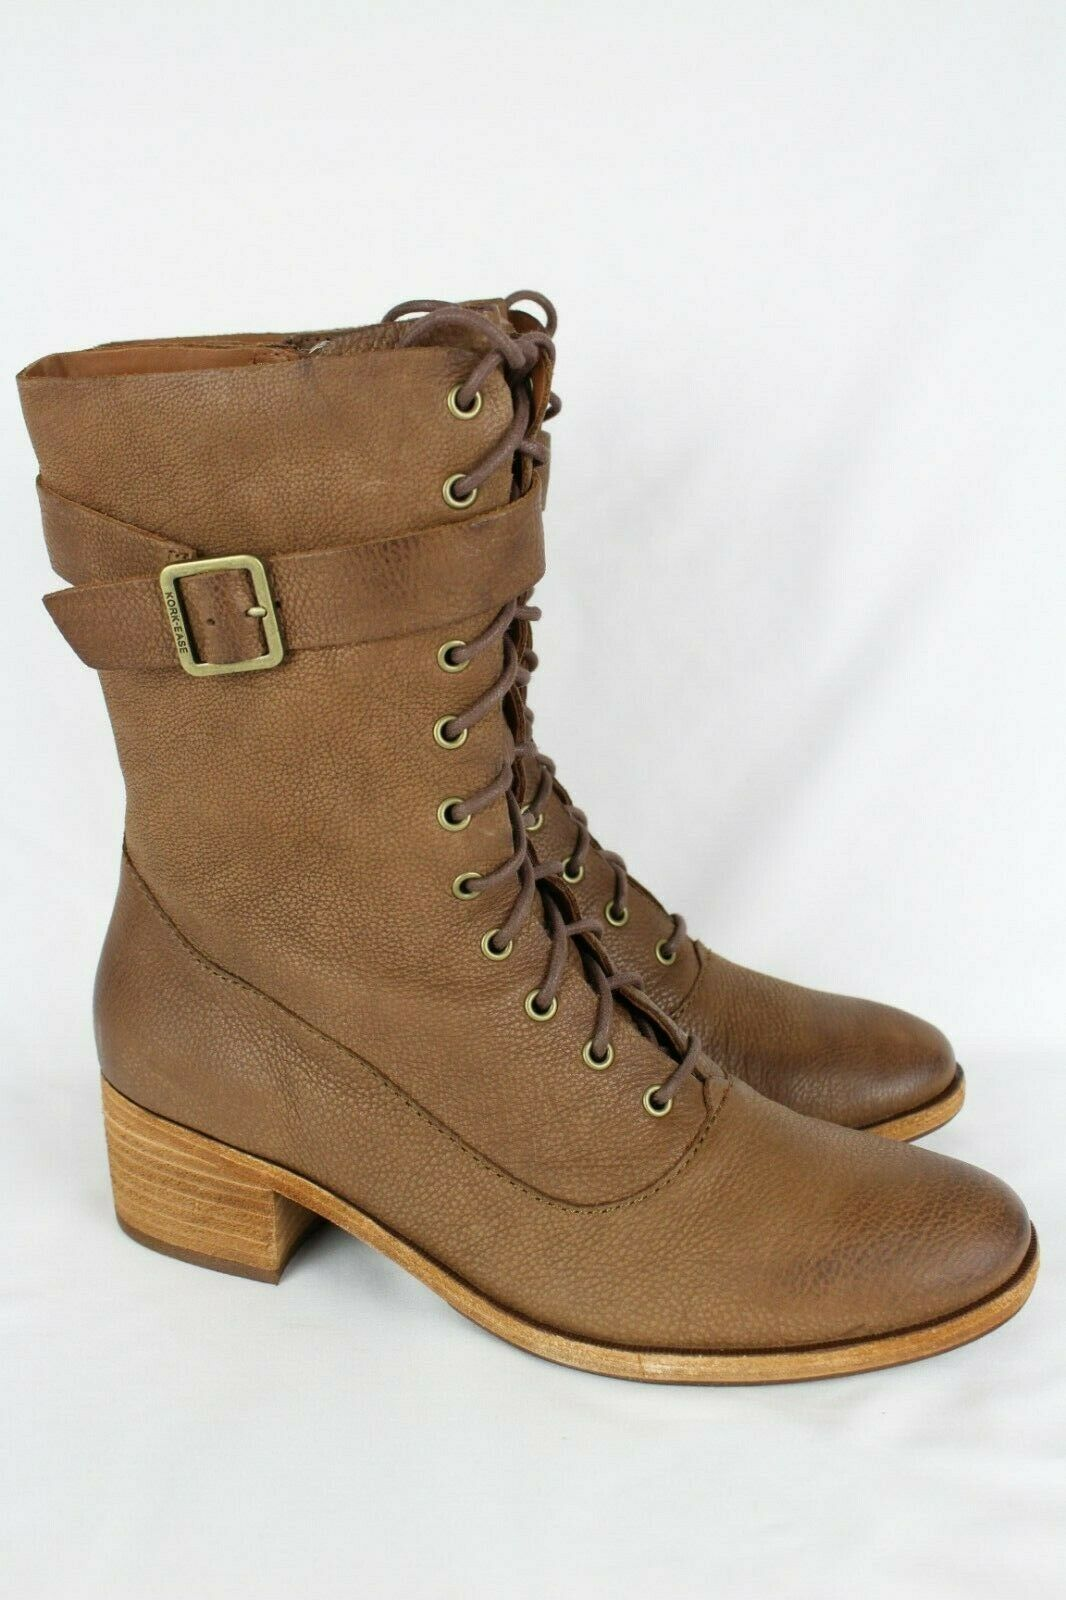 New Kork Ease Women's Mona Lace Up Boots Size 9.5 Brown Aztec K57806